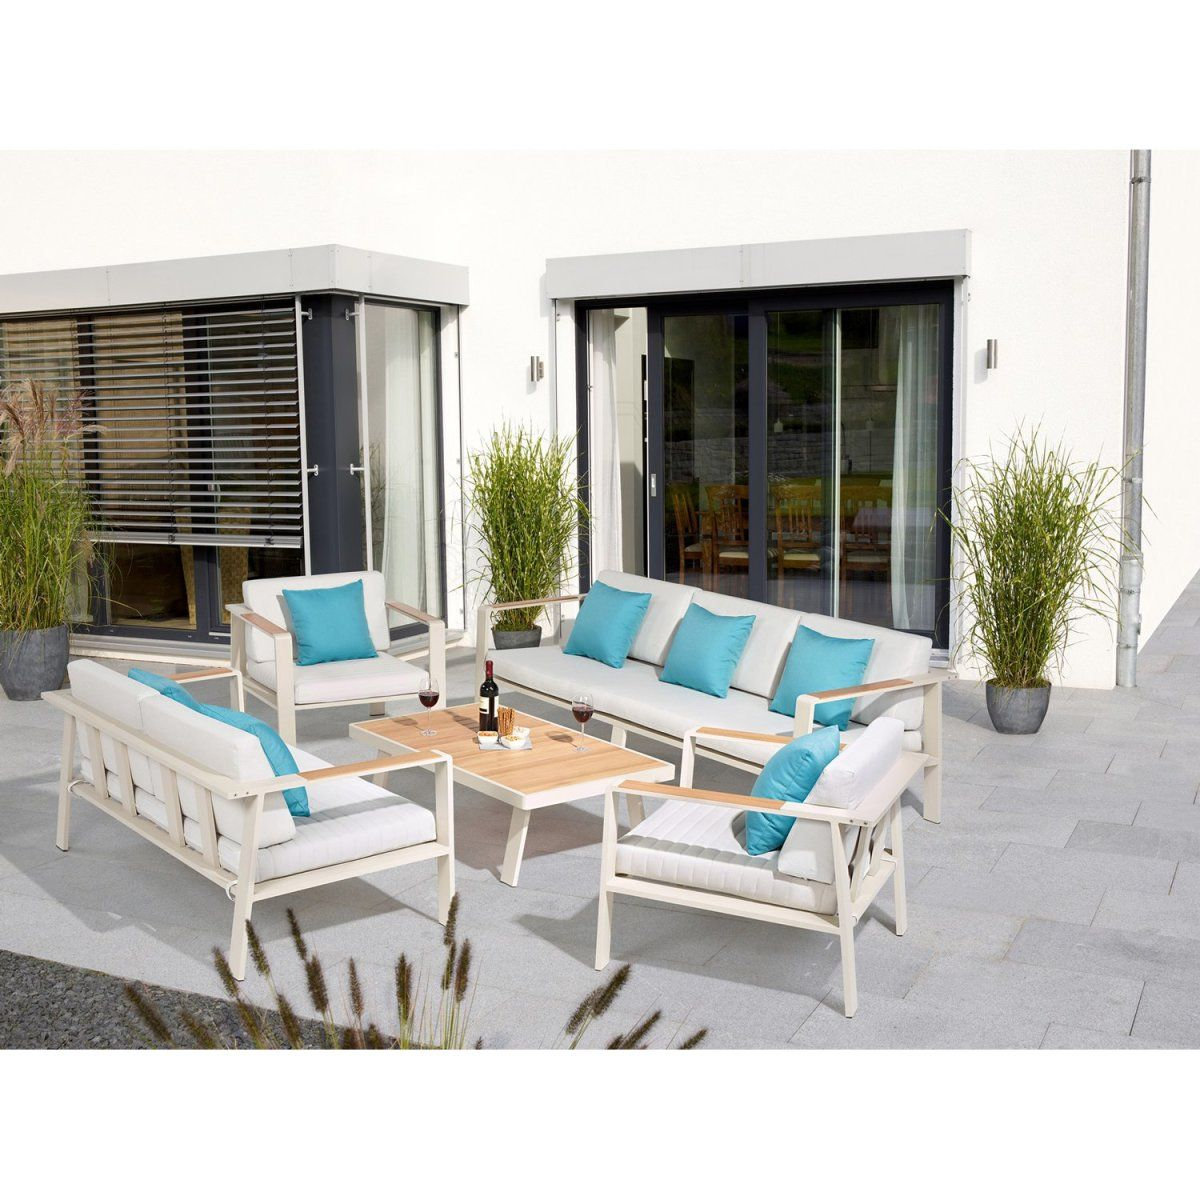 outdoor living gartenmobel obi, obi lounge-gruppe north valley 5-teilig jetzt bestellen unter: https, Design ideen